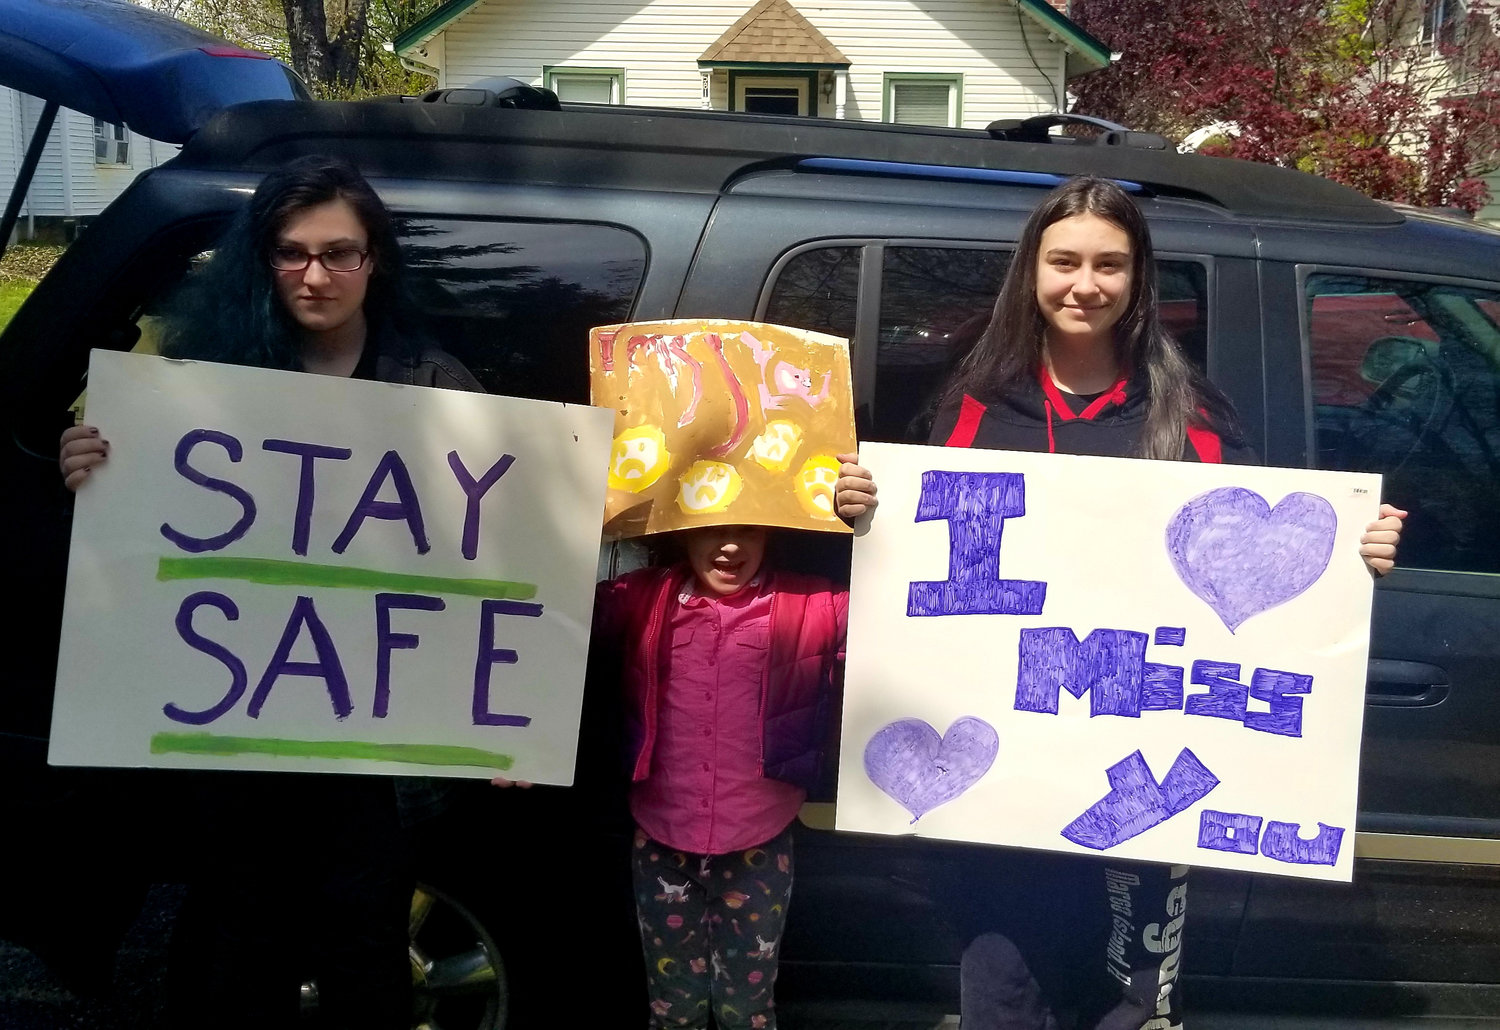 Baldwinites Heather, Rachel and Tori Ilardi joined Marie Ilardi in visiting family and friends from safe distances away last month.